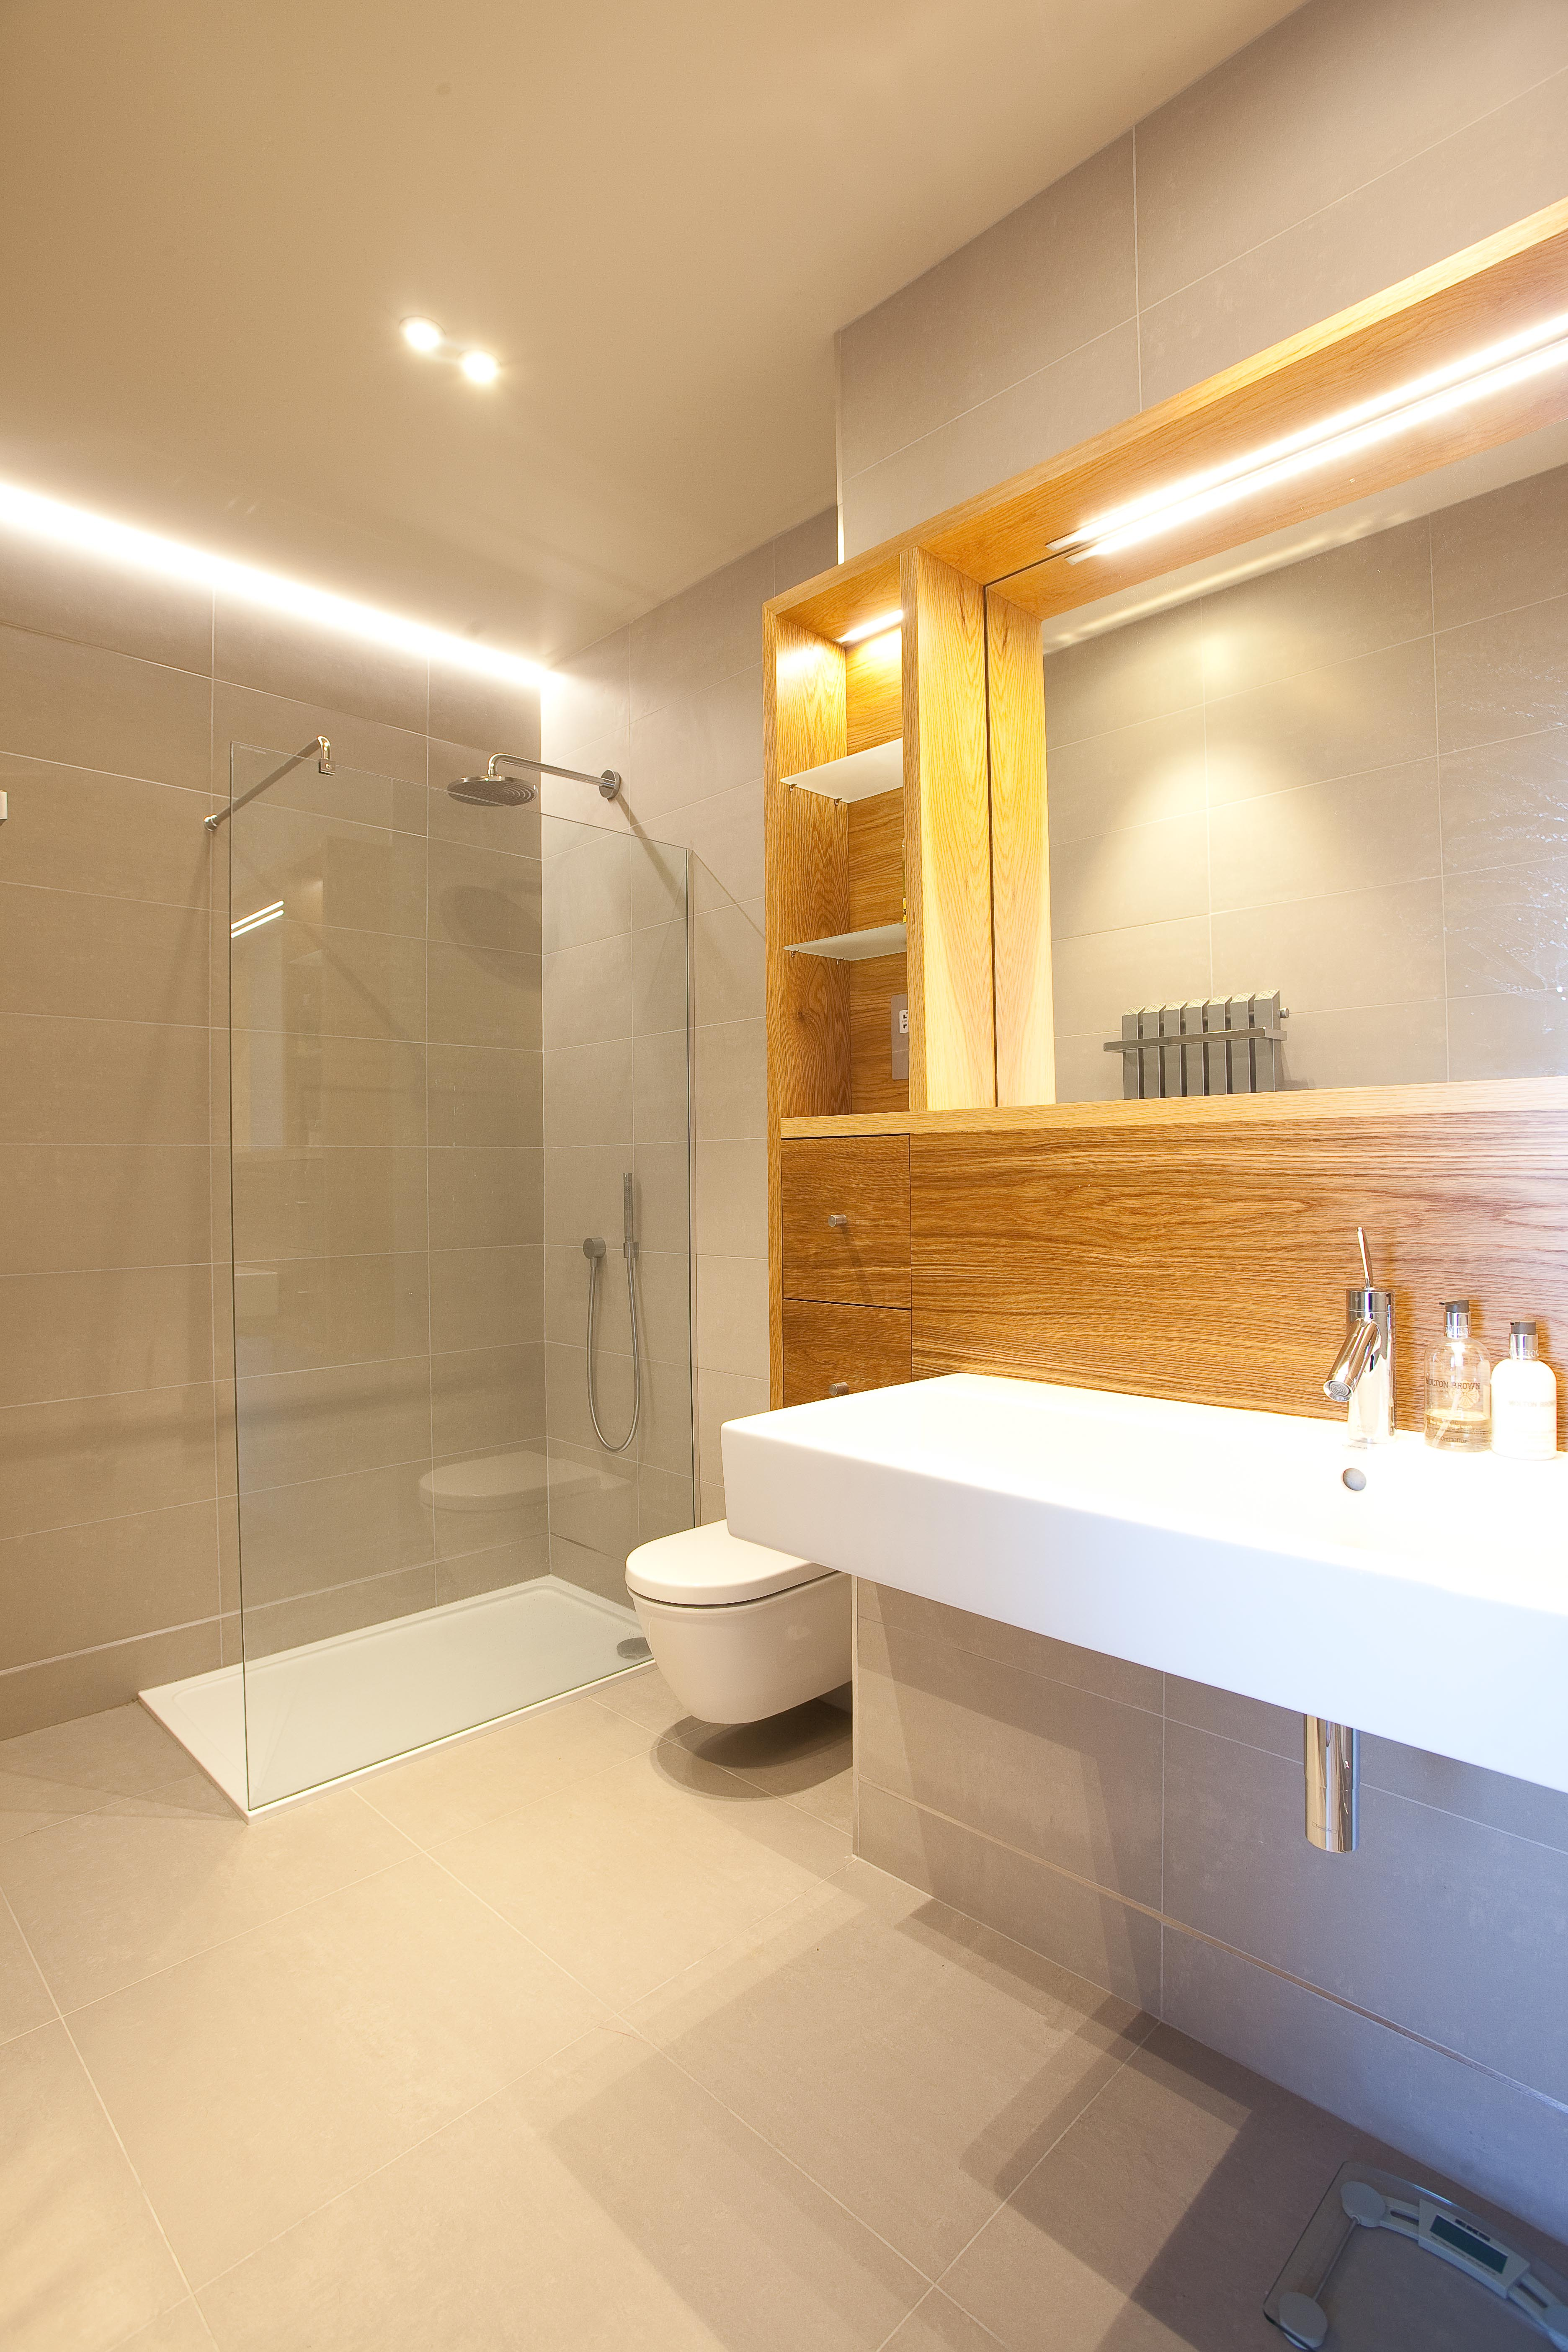 Sleek contemporary white sink with toilet and walk in shower.